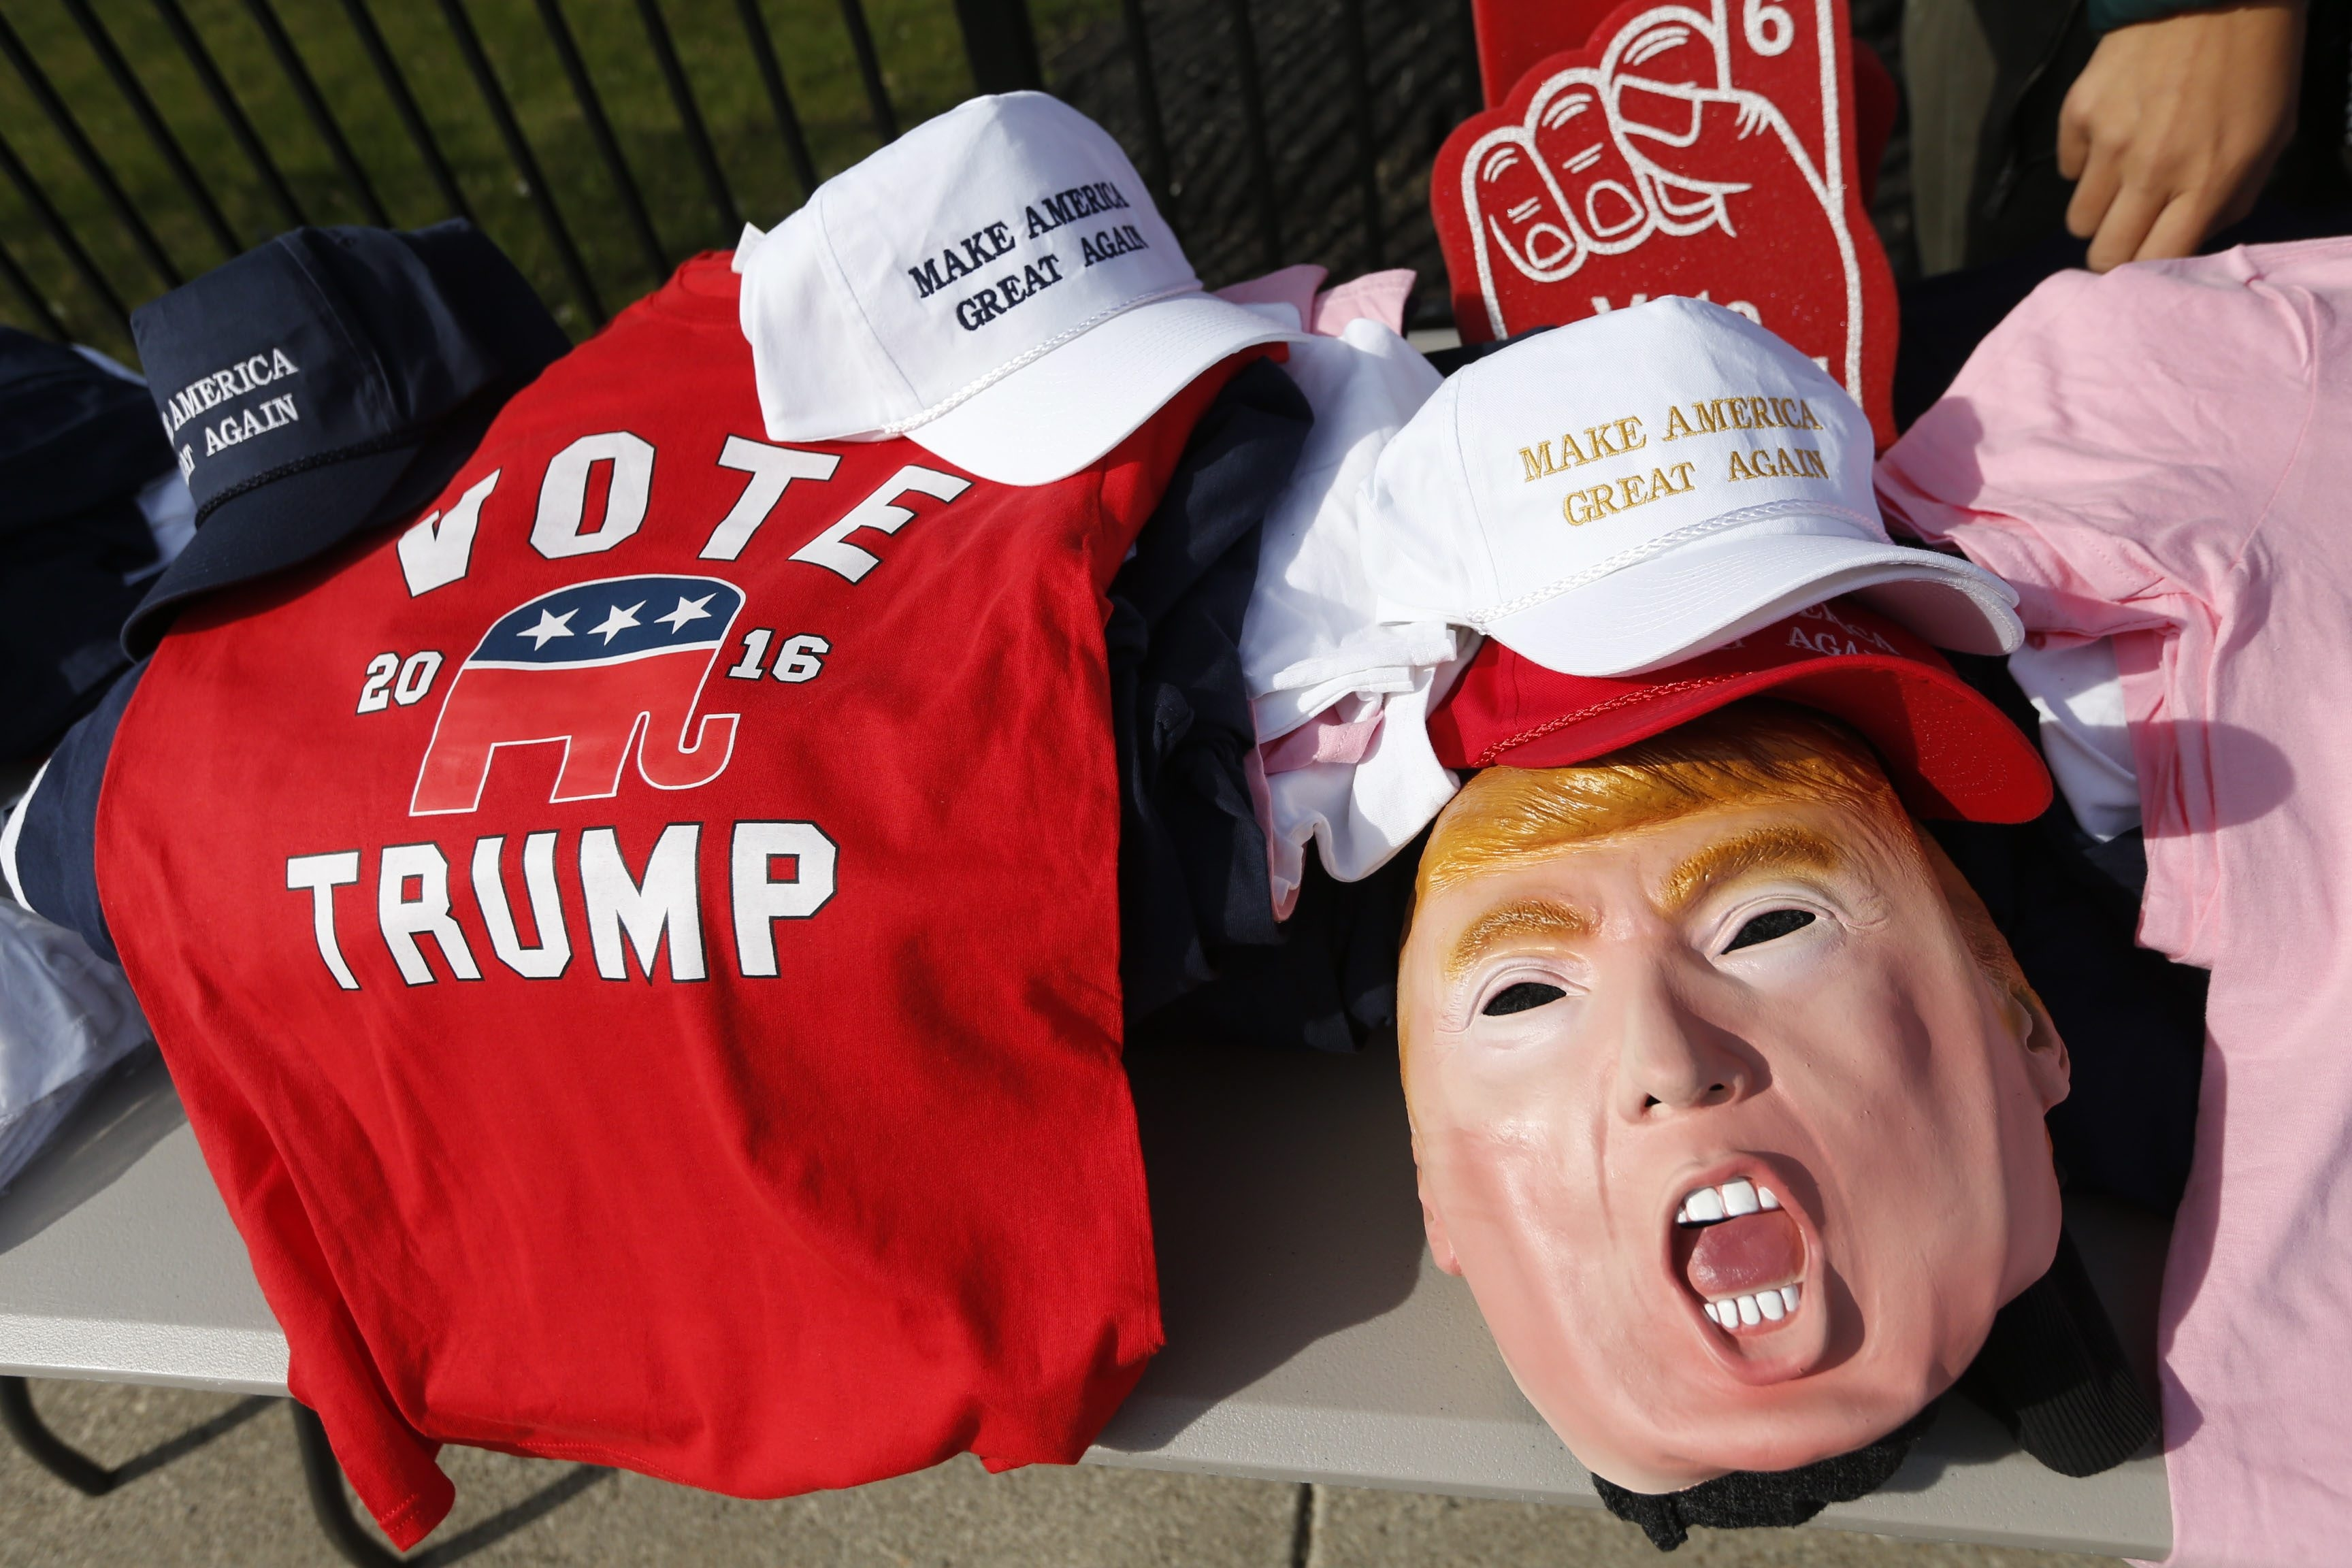 Vendors were selling Donald Trump items outside the First Niagara Center during Trump's visit on April 18.